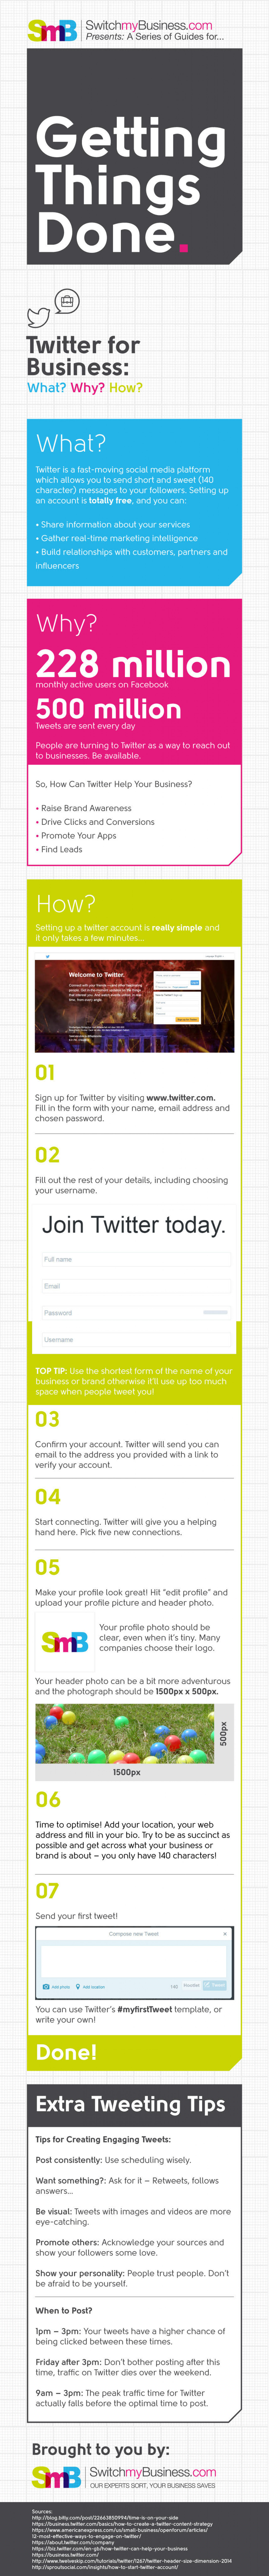 Setting up a Twitter business account: What, why, how and when? Infographic